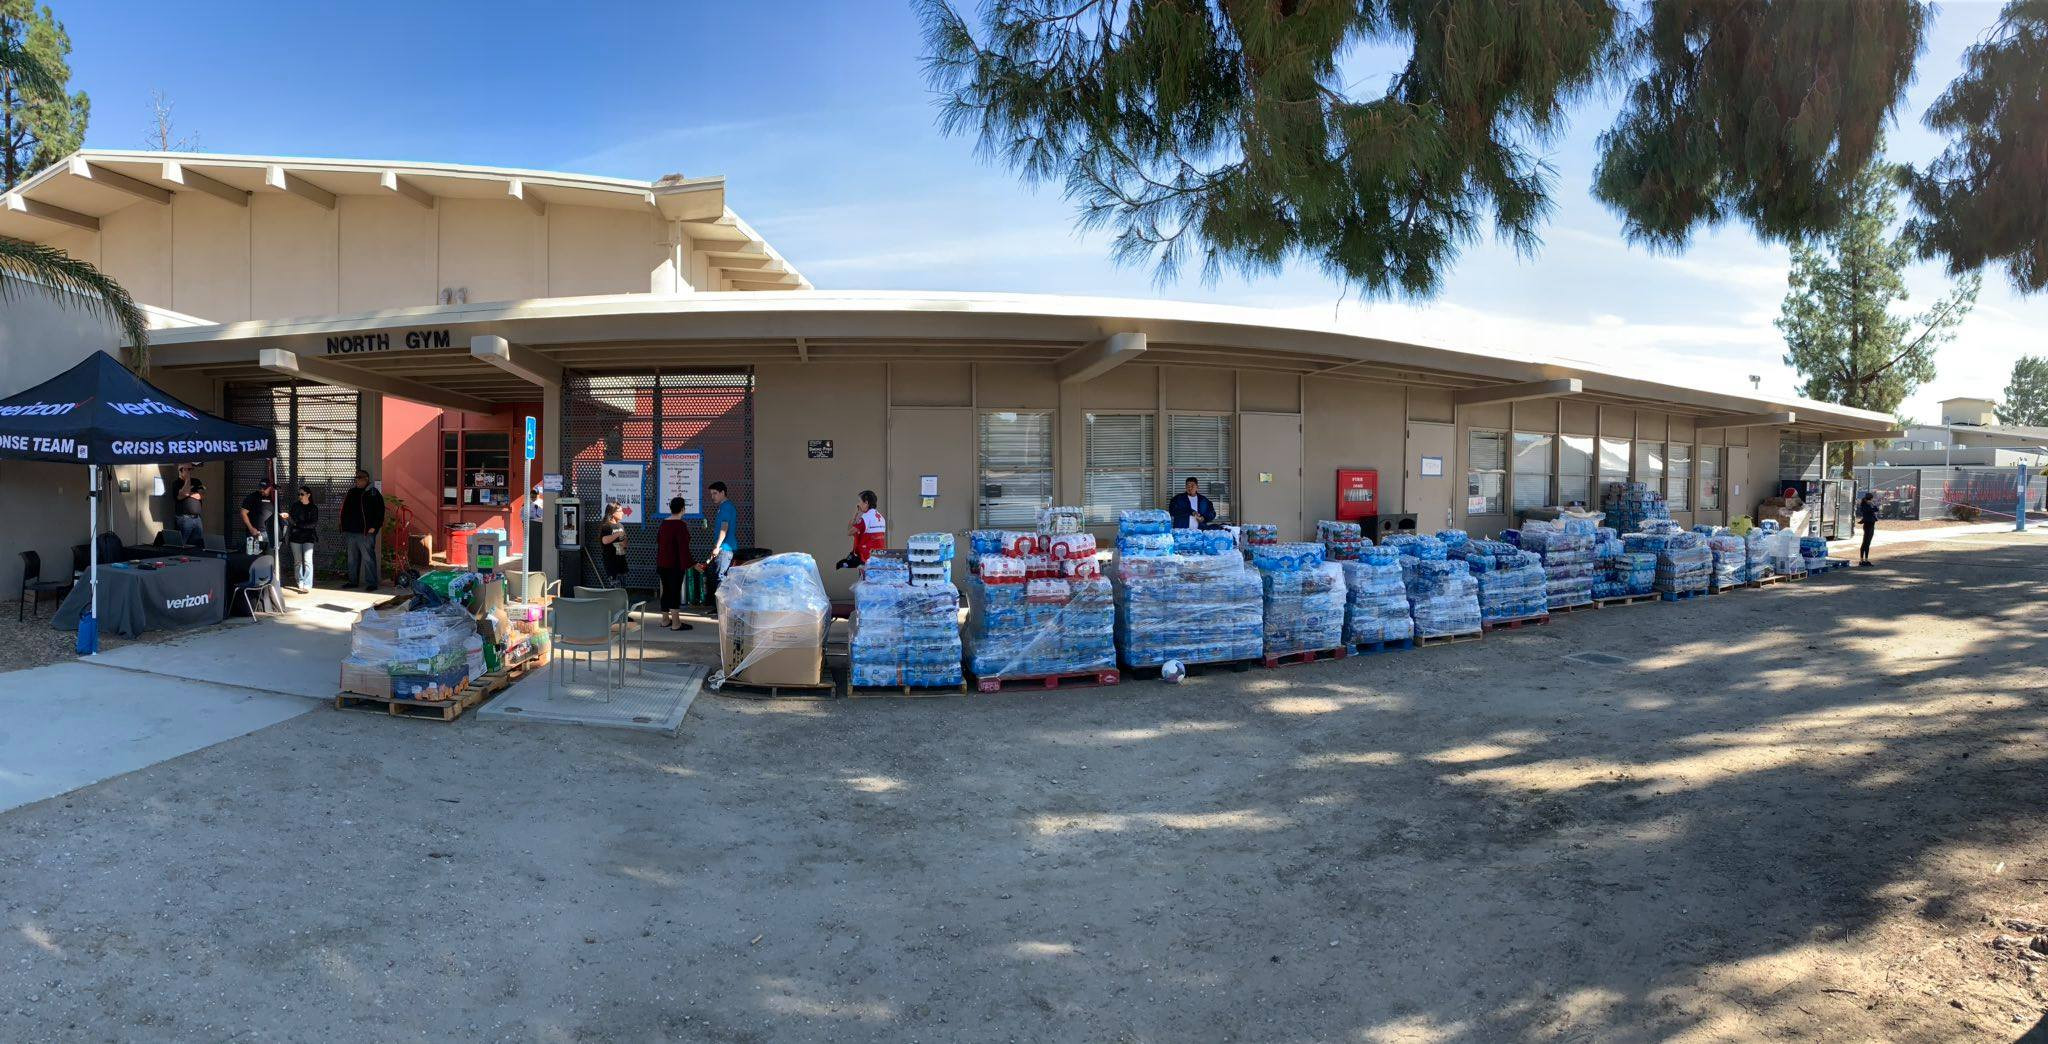 Outside view of donation center